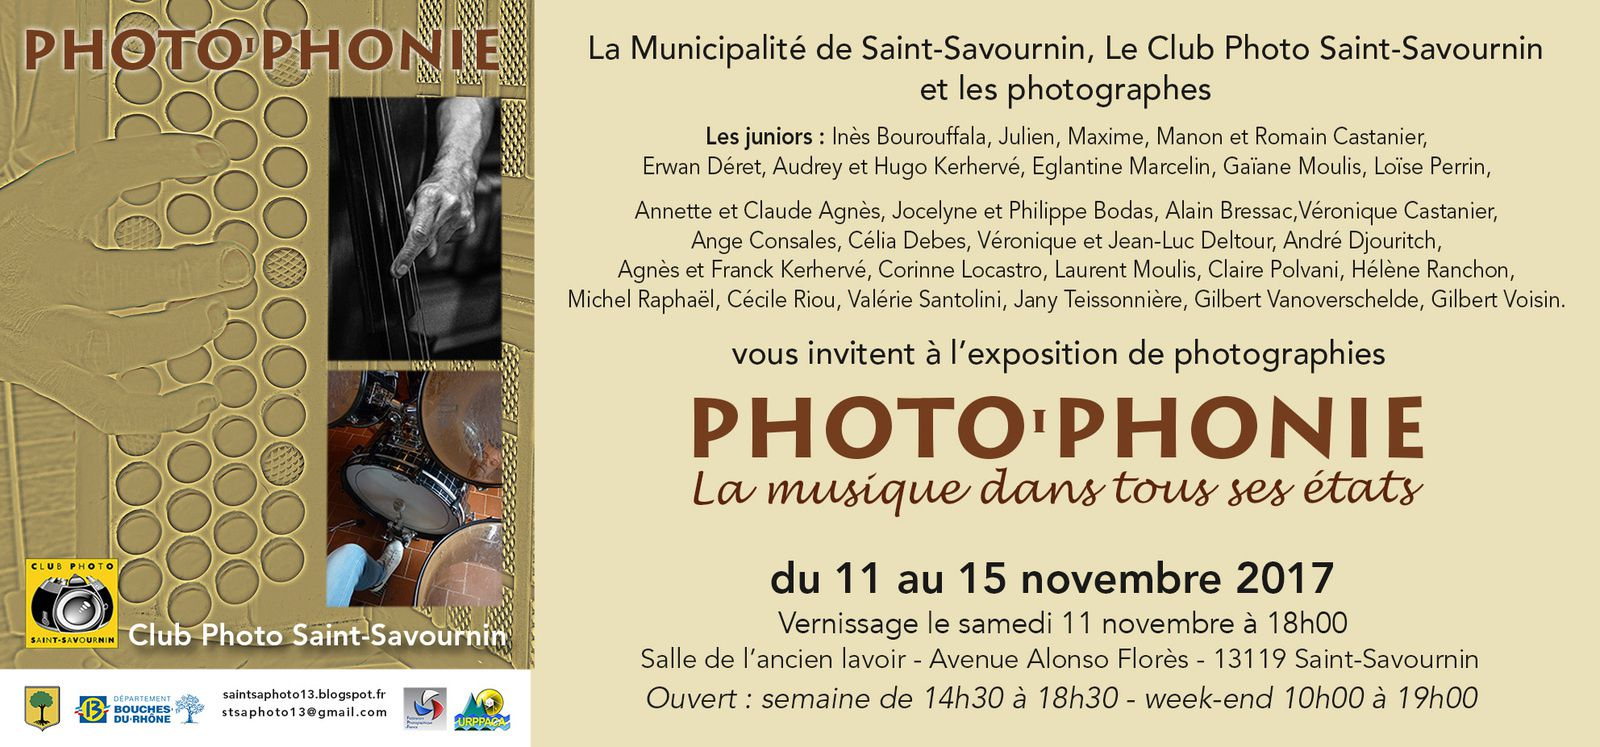 L'expo photo annuelle du Club Photo de Saint Savournin, c'est ce week-end !